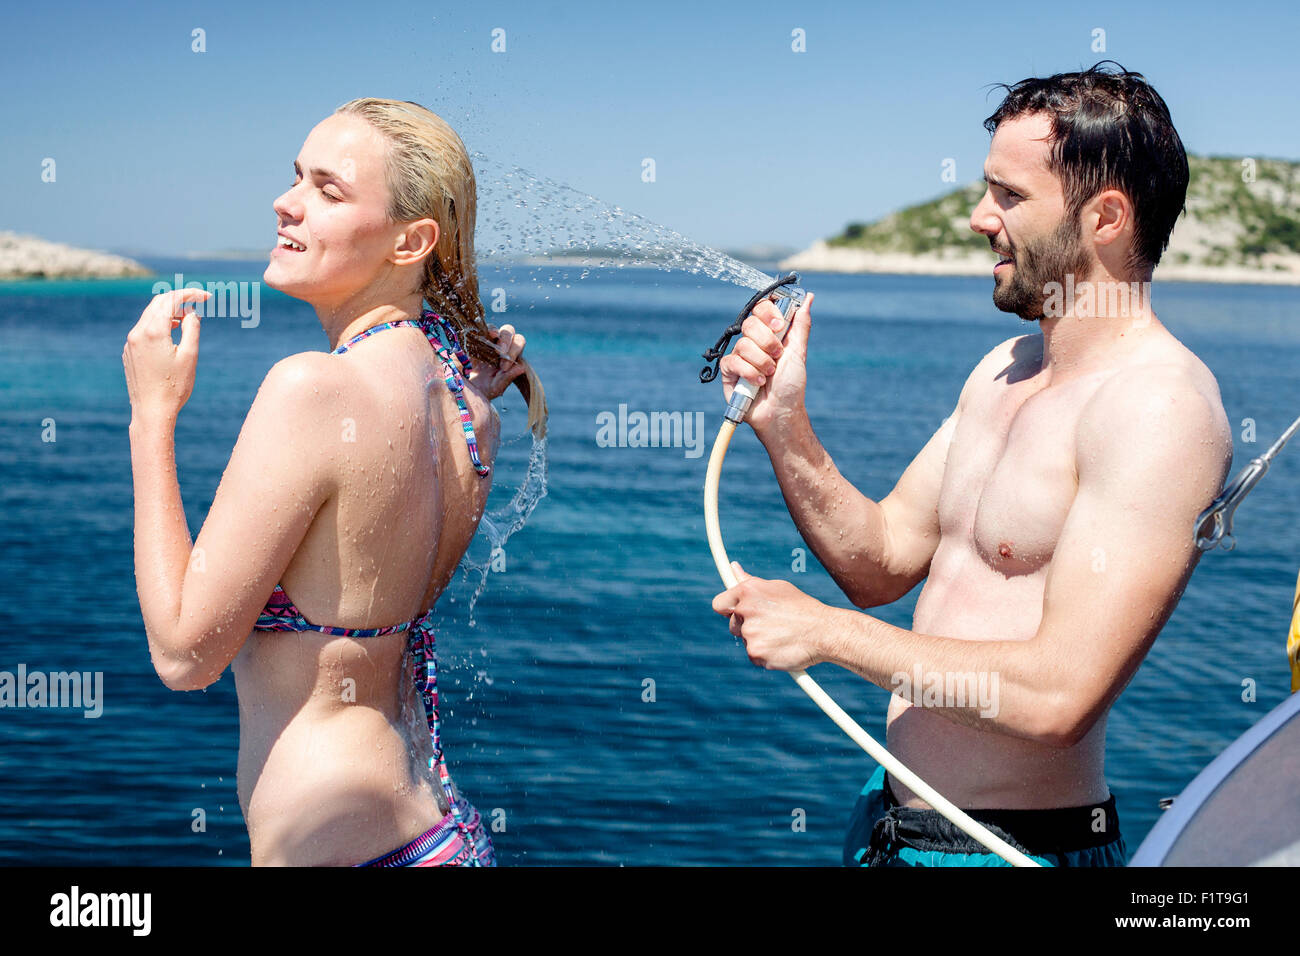 Woman being sprayed with water on sailboat, Adriatic Sea - Stock Image